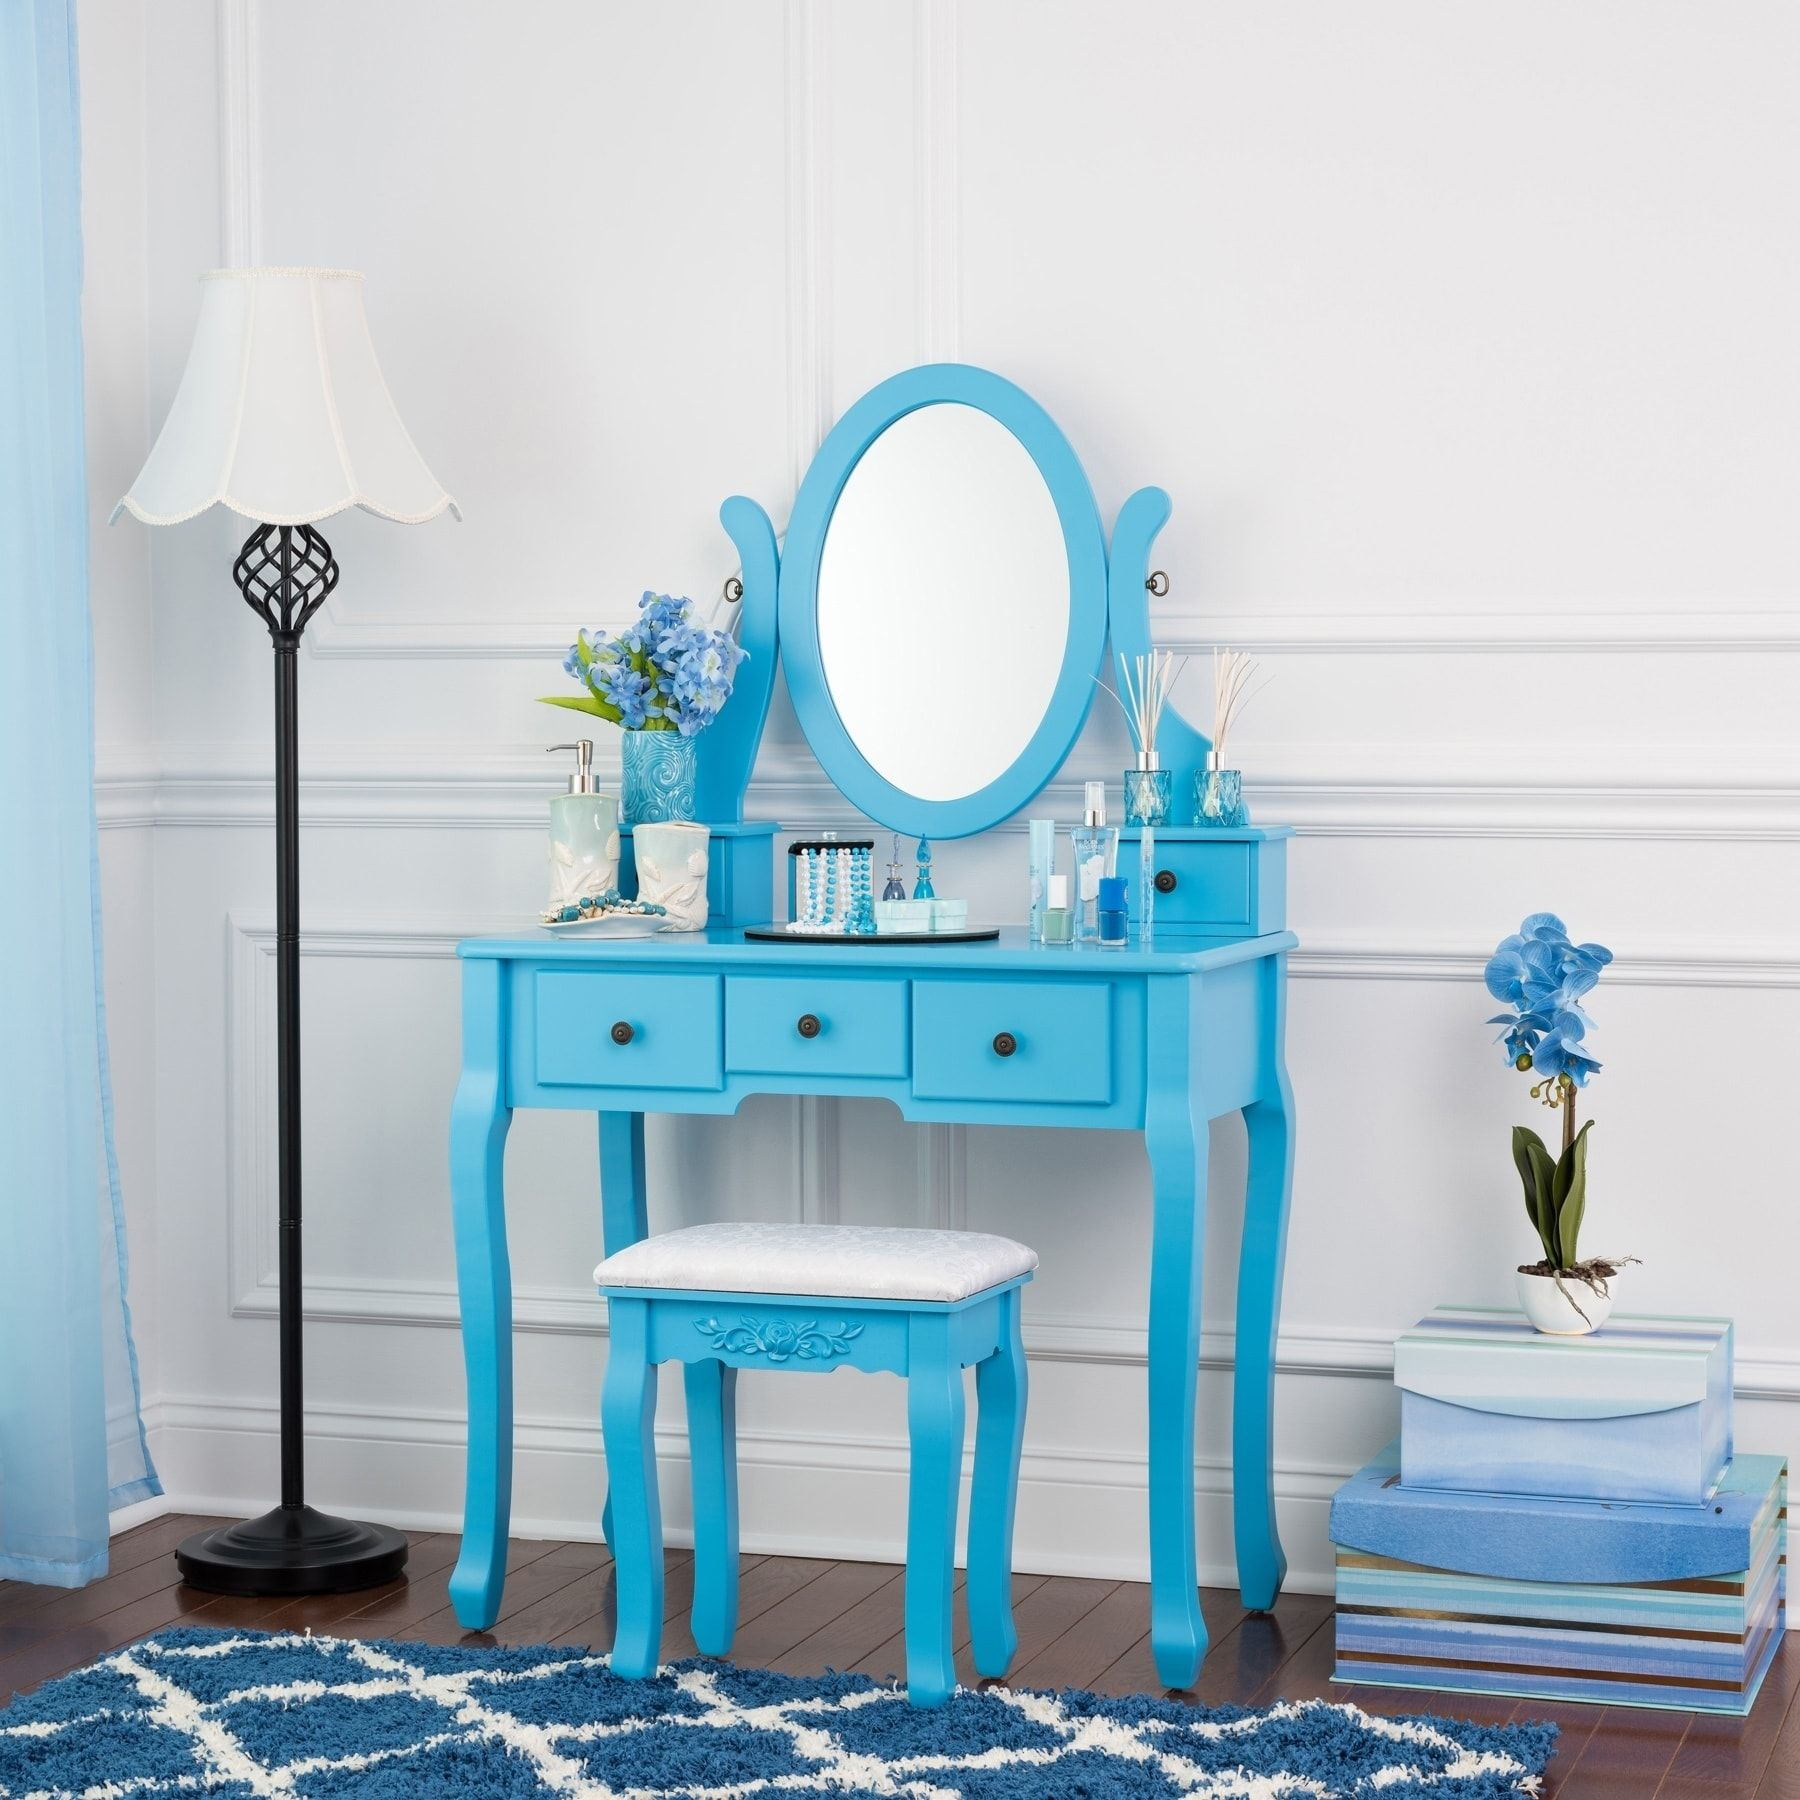 Fineboard single mirror dressing table set five organization fineboard single mirror dressing table set five organization drawers vanity table with wooden stool geotapseo Images